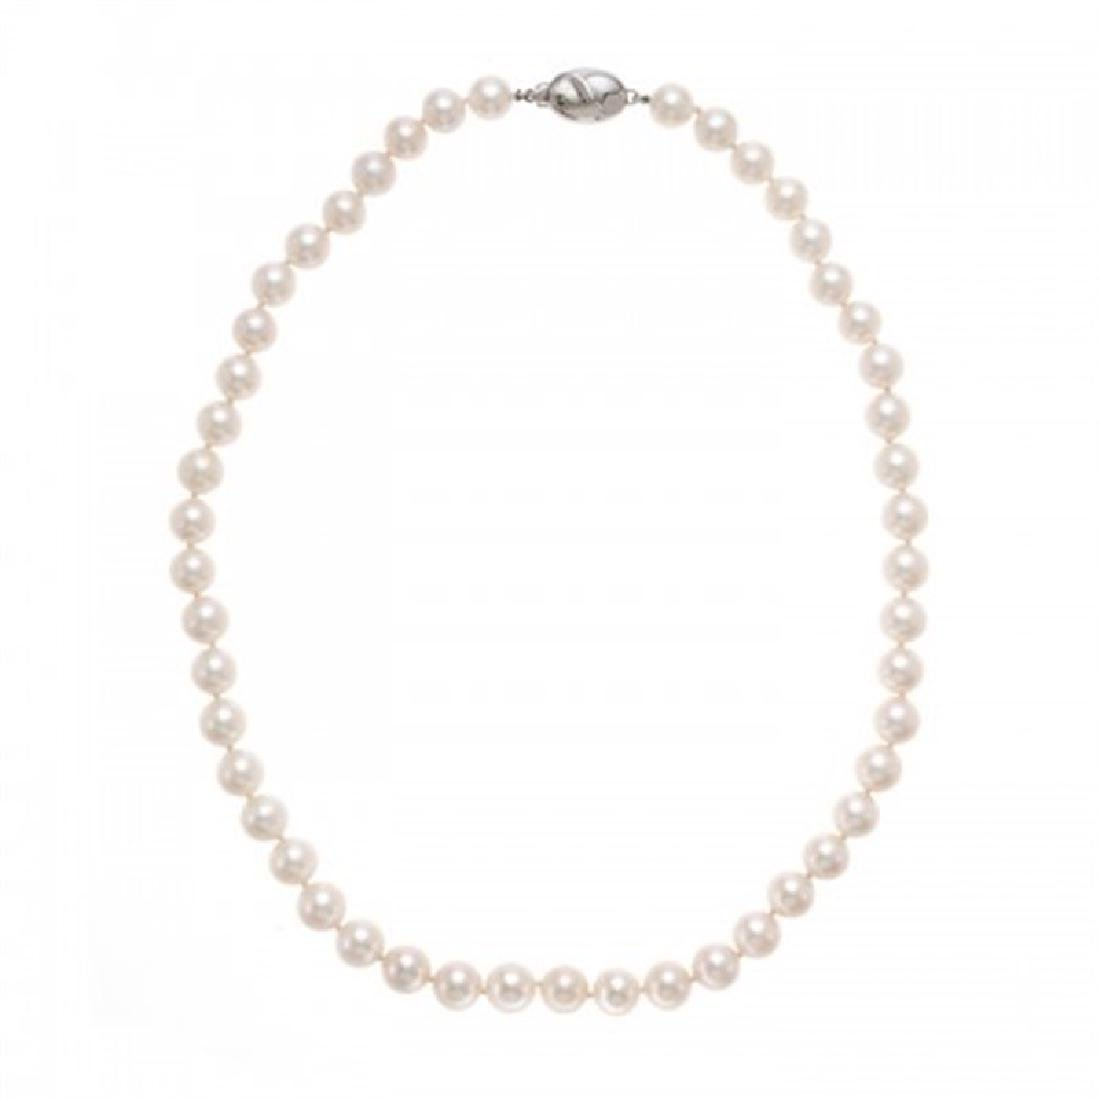 8.5-9.0mm Chinese Akoya Pearl Necklace